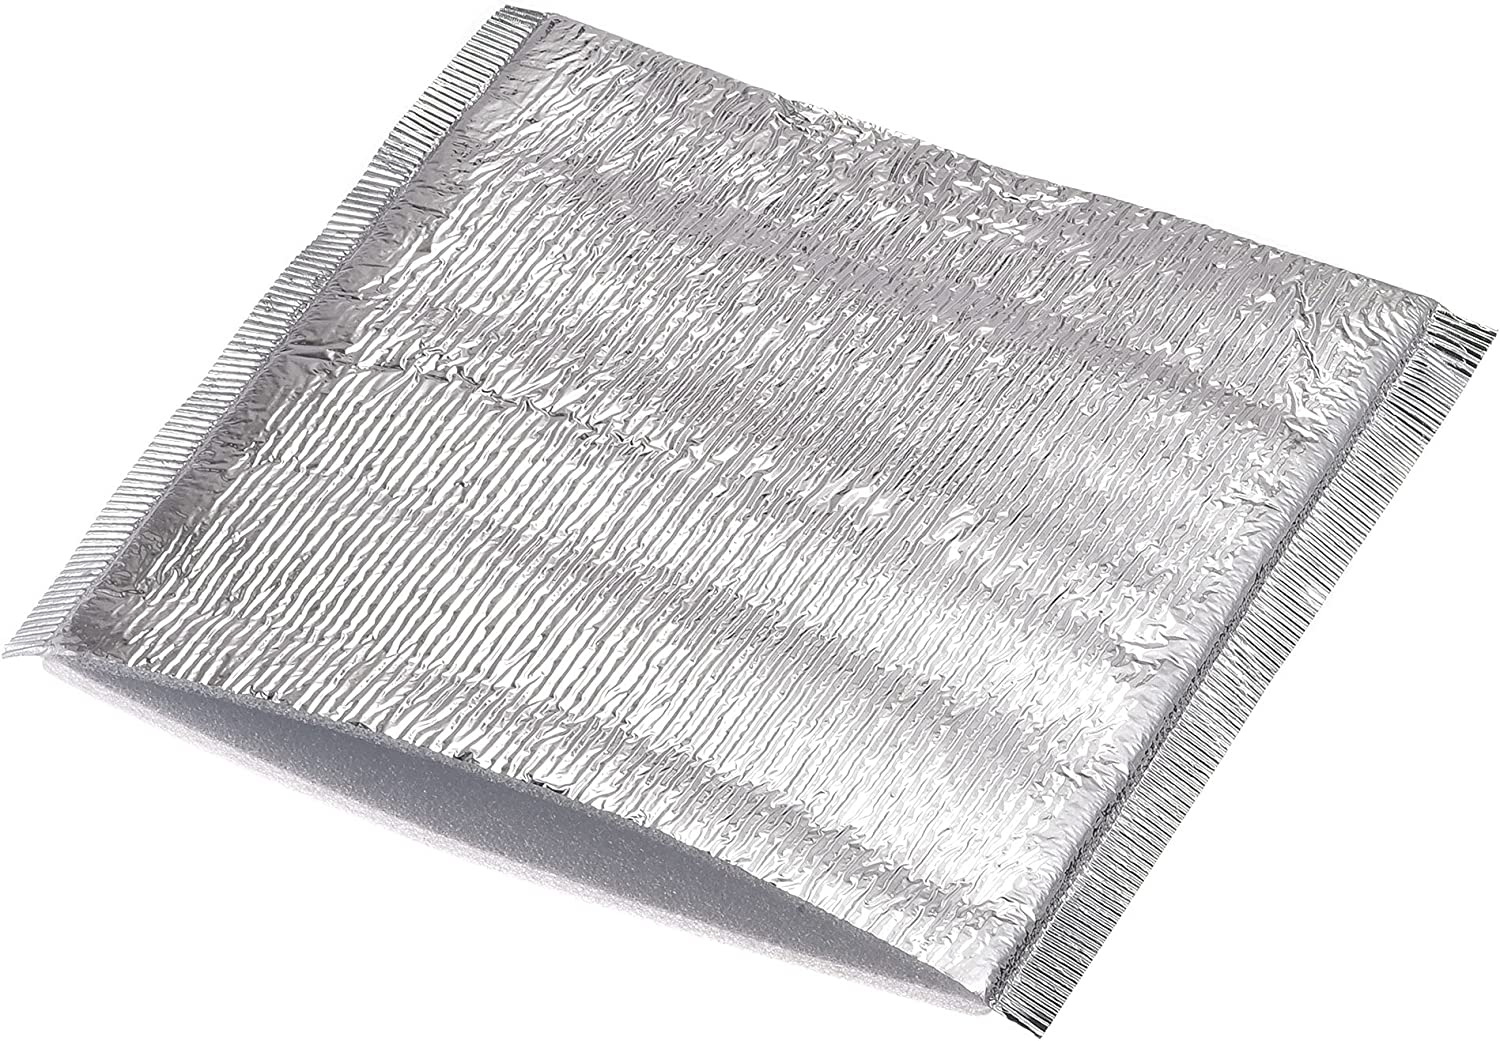 MECCANIXITY Reusable Thermal Insulation Bags,13.65x13.65inch Insulation Aluminum Foil Foam Bag for Delivery Thermal Box Lining (Pack of 10pcs)